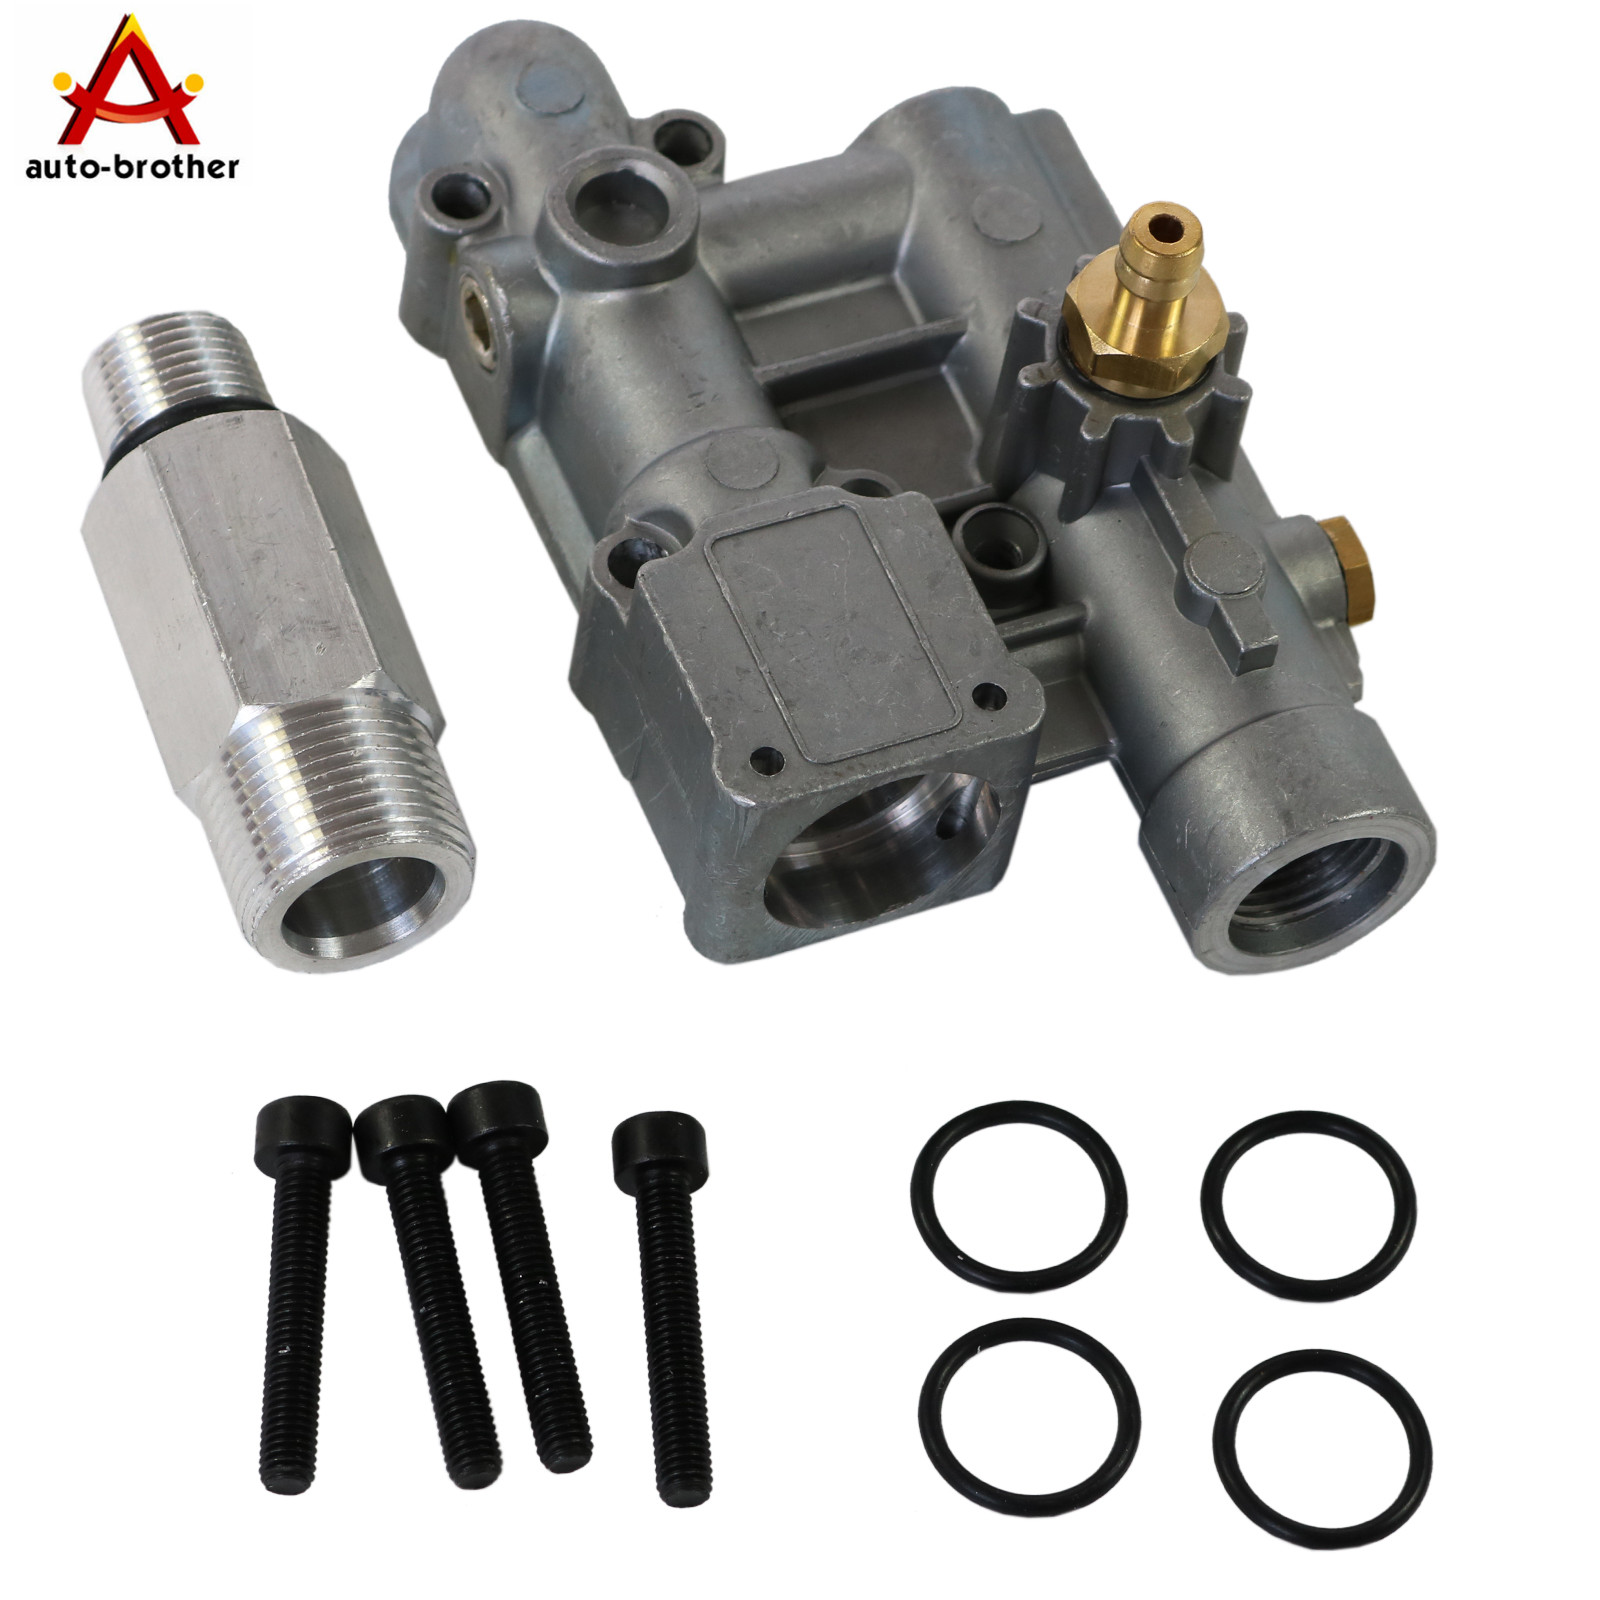 Pressure Washer Manifold Kit for Briggs Stratton 020228 16031 190627GS Craftsman